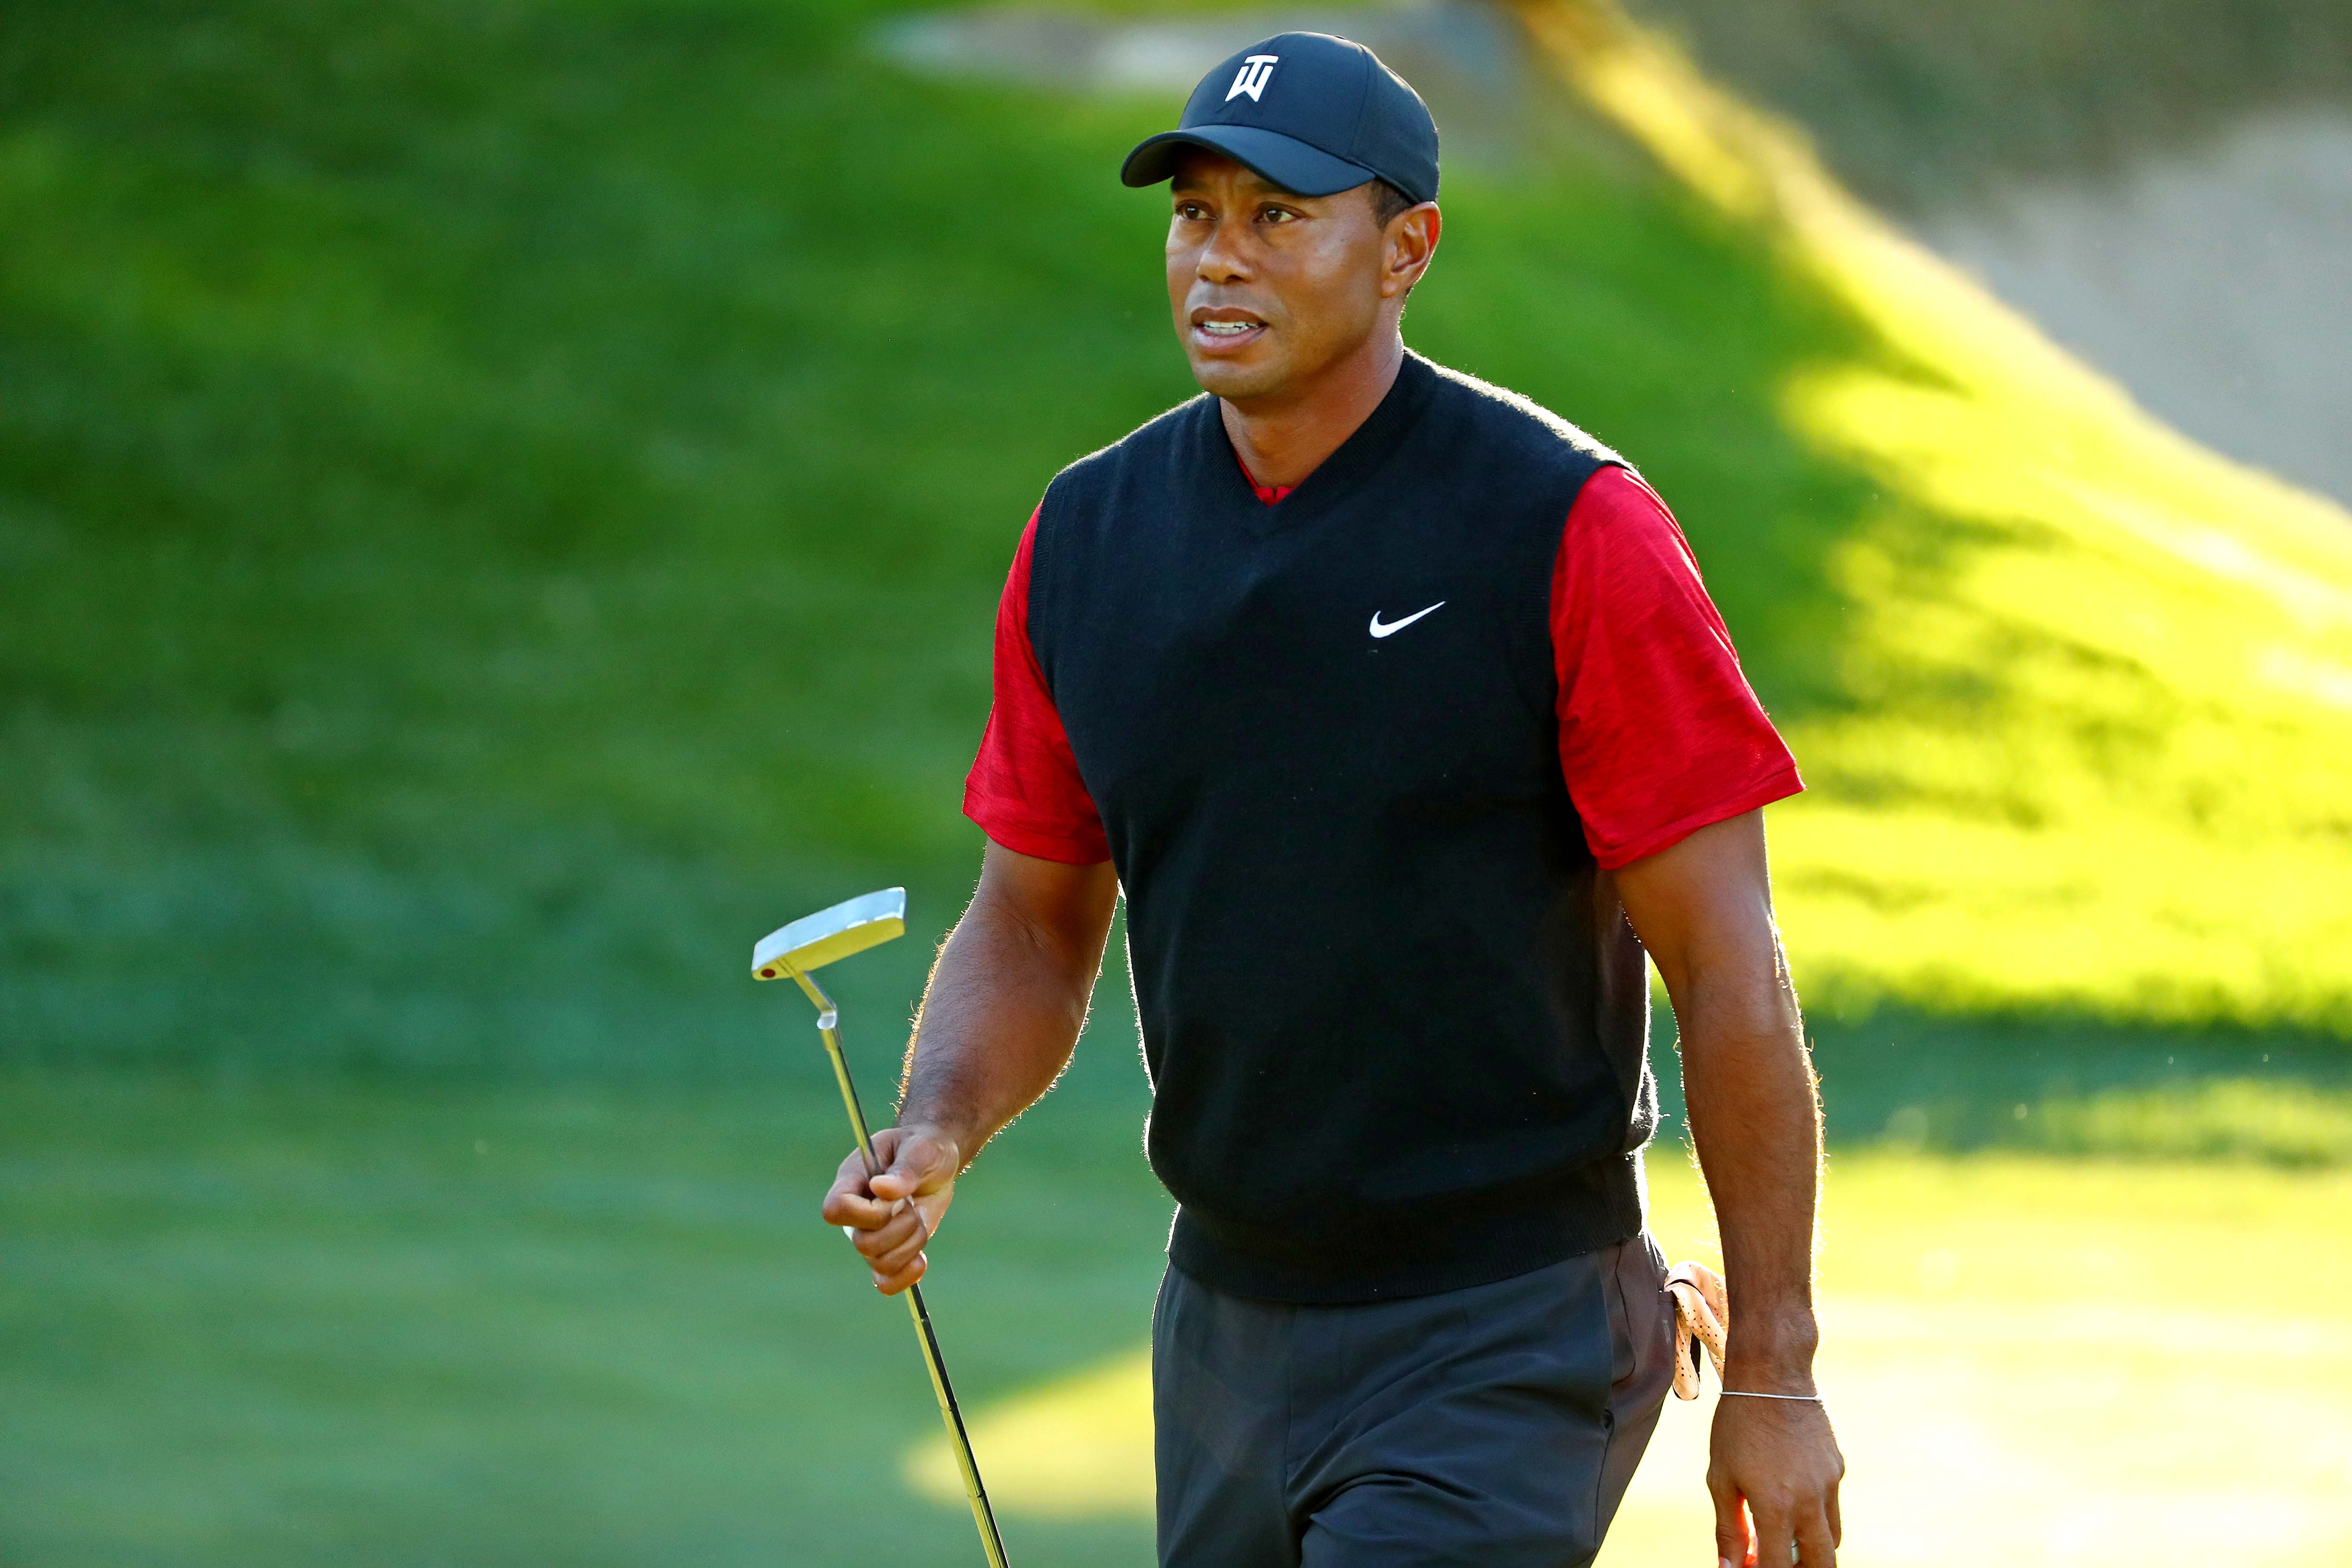 Tiger Woods reacts to his putt on on the 14th green during The Match: Tiger vs Phil at Shadow Creek Golf Course on Nov. 23.